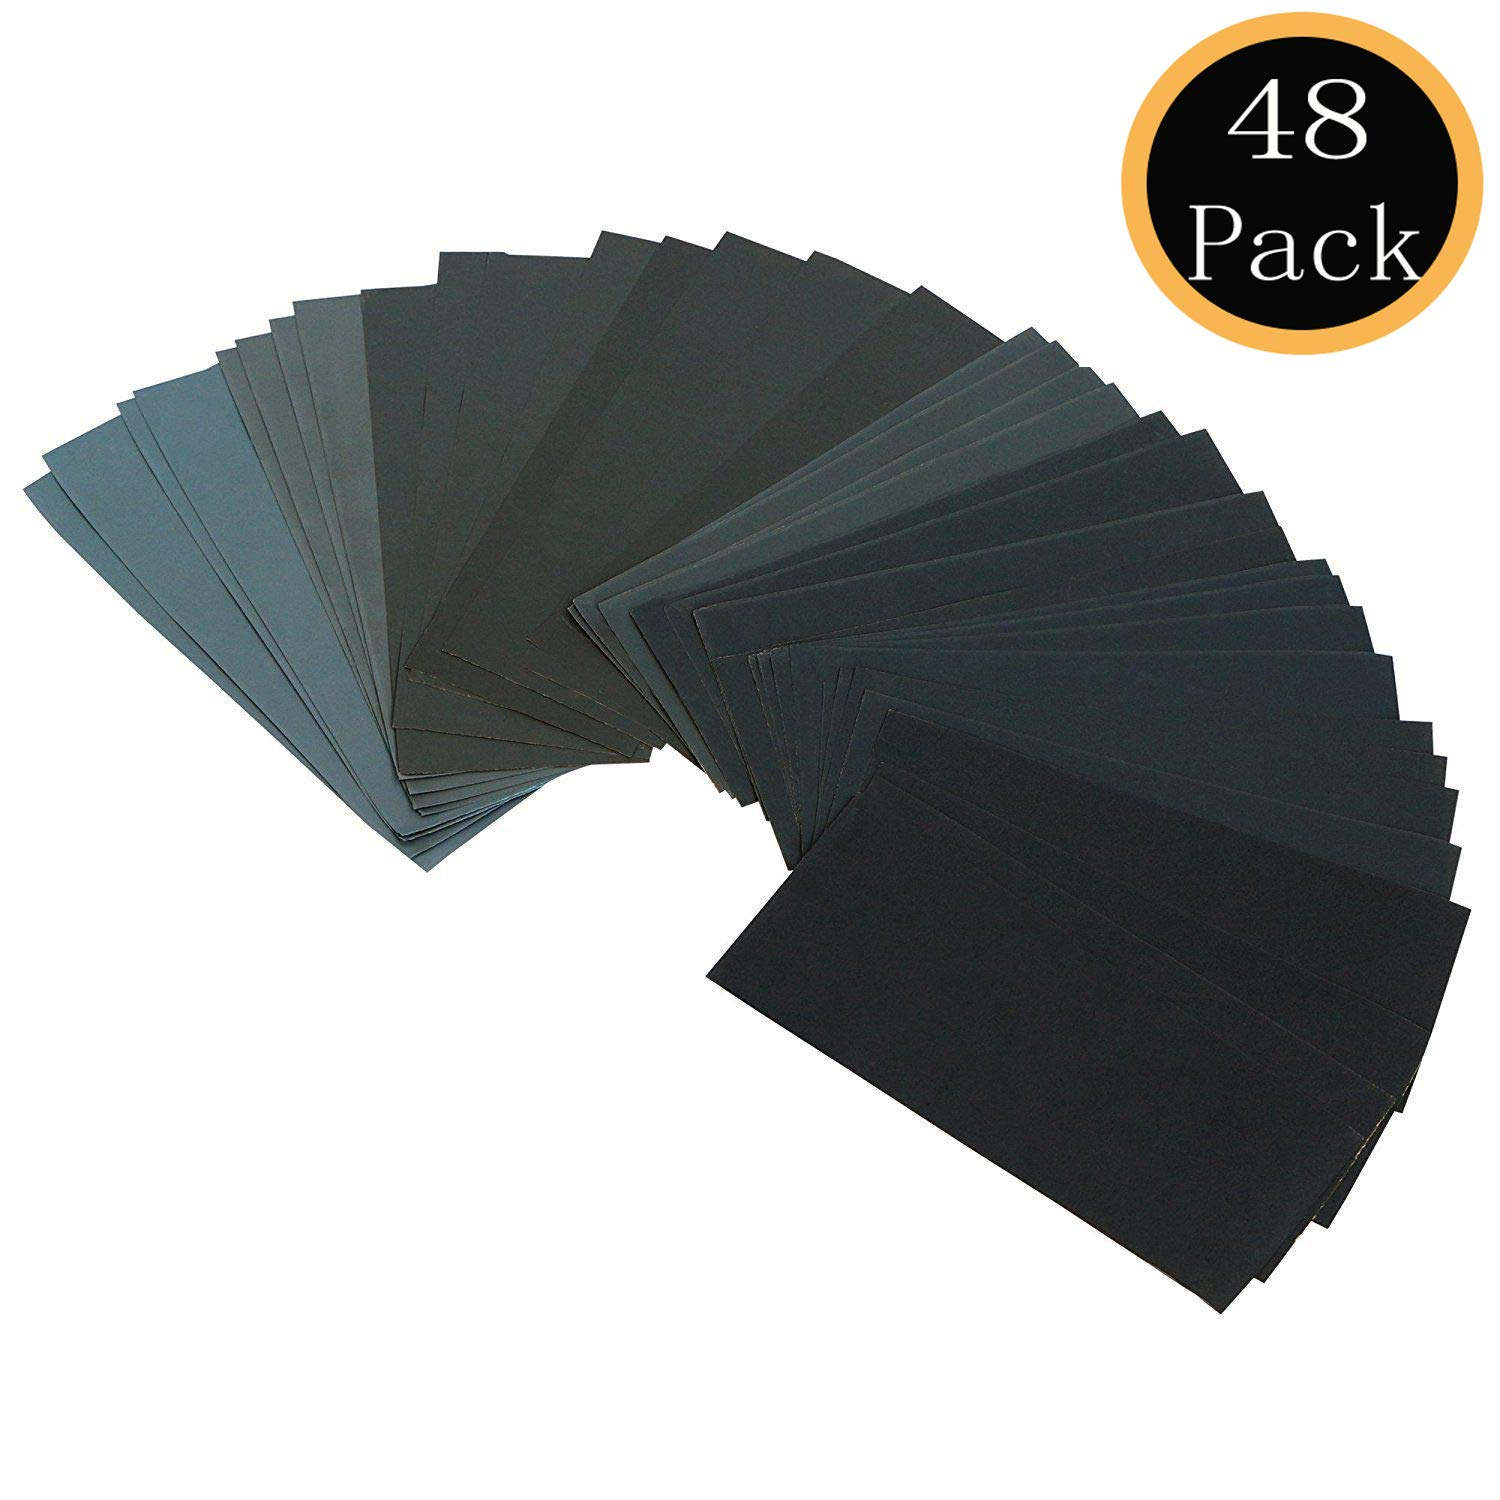 48-Pack Sandpaper Assortment Block}